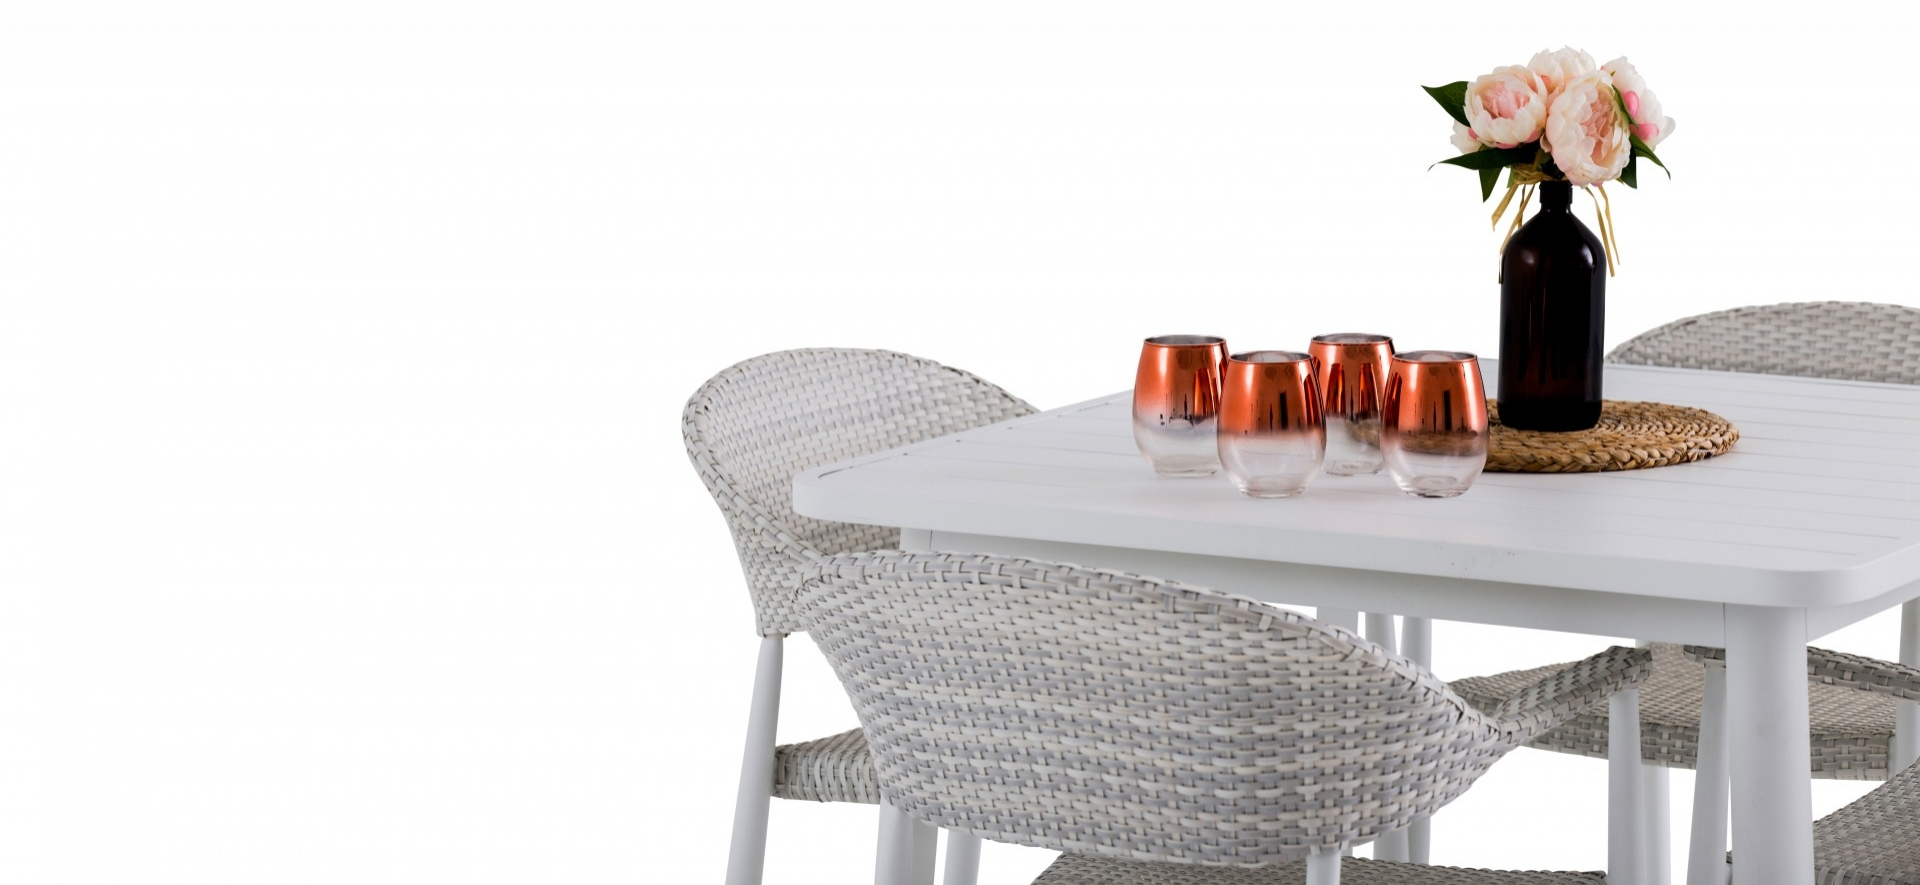 Rio Outdoor Chairs with Table White